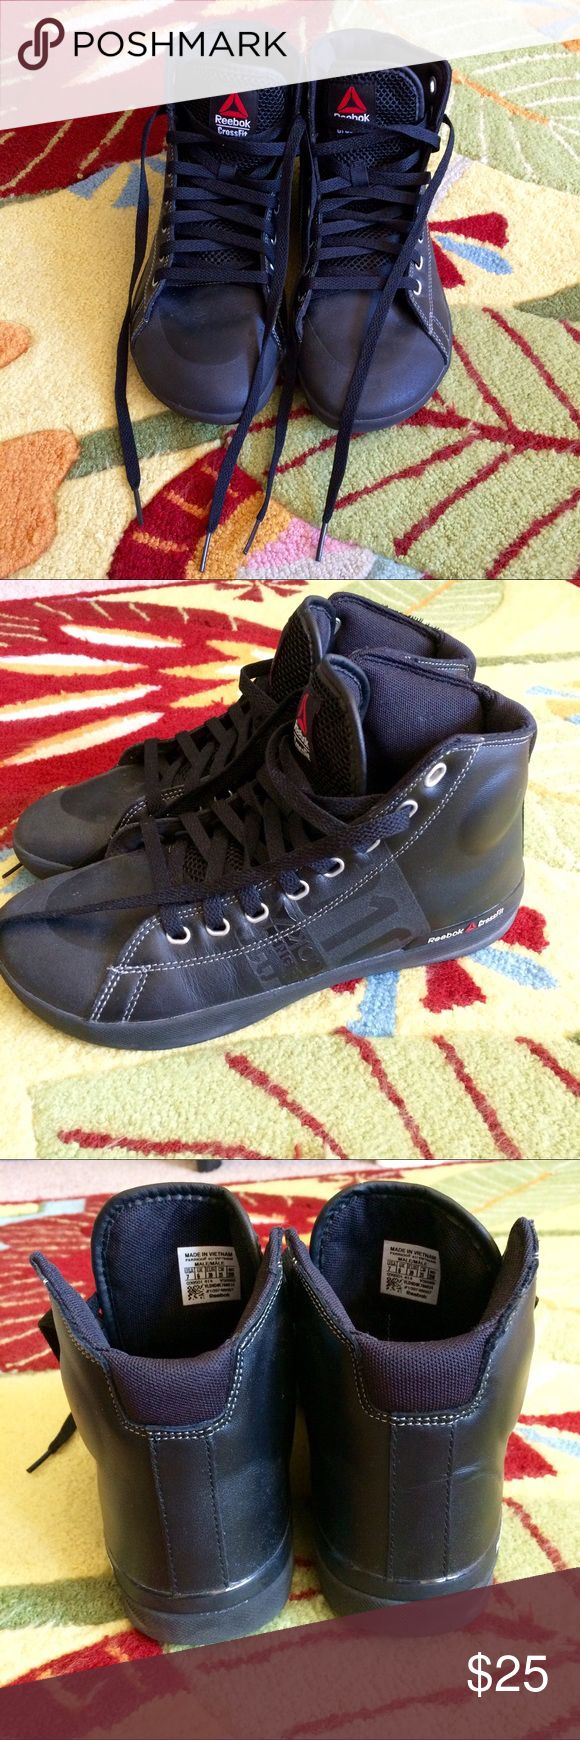 Reebok Crossfit High-Tops🏋🏽 Men's size 7 Reebok Crossfit High-Tops. I was hoping I could fit into Men's sizes but they are too wide for me. Perfect condition. Reebok Shoes